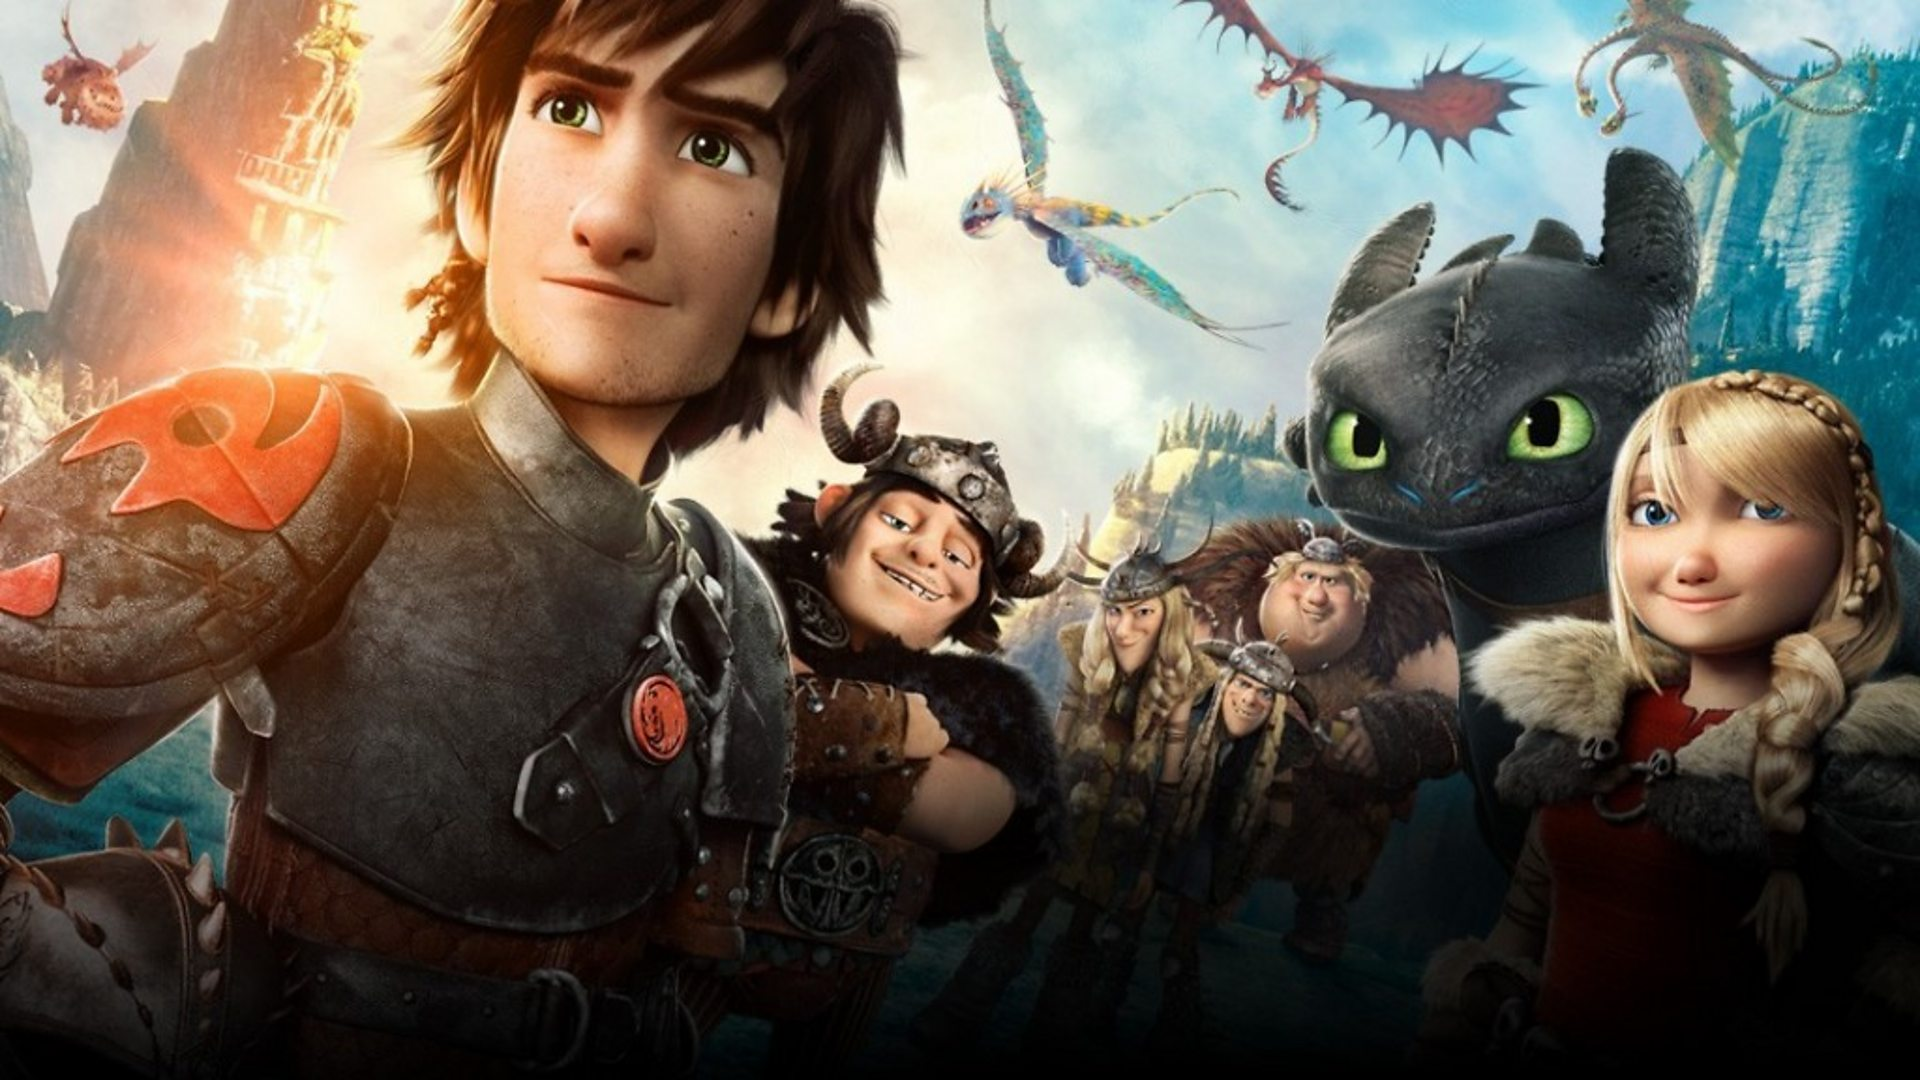 2014, Mark Kermode  Reviews How To Train Your Dragon 2